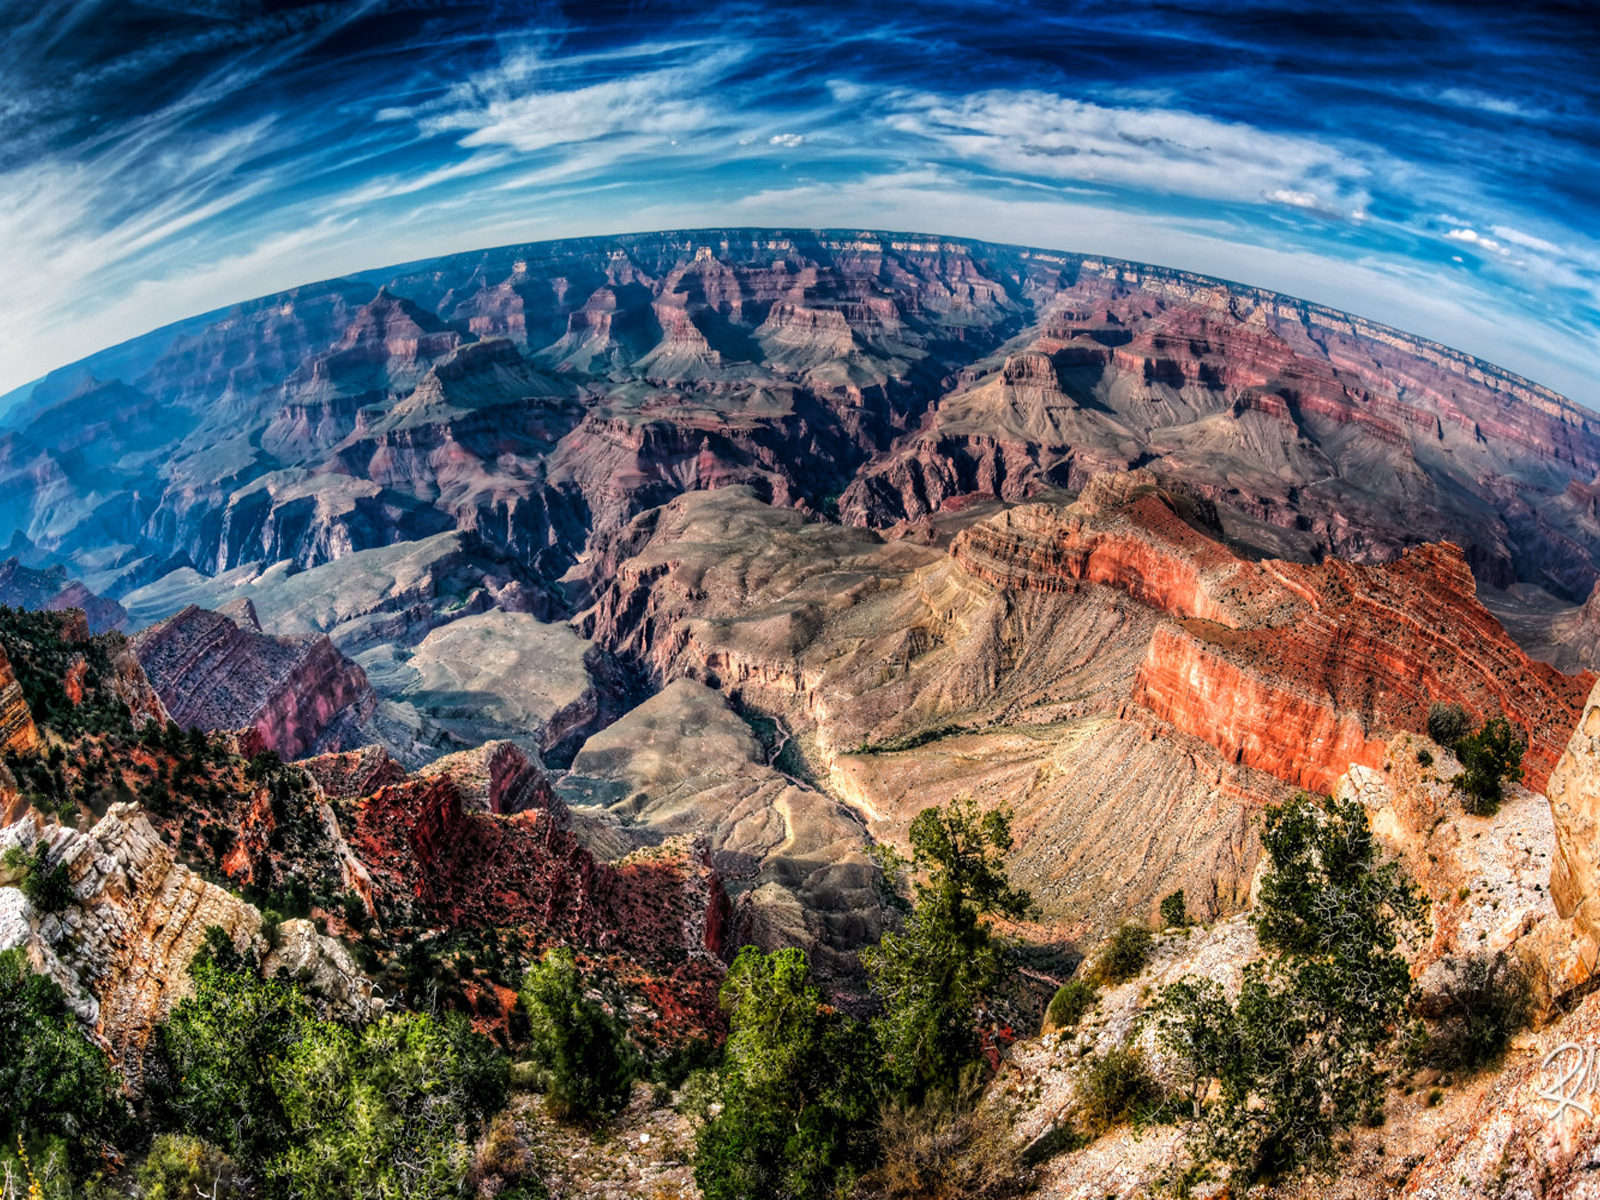 New Hd Wallpapers For Iphone 4 Grand Canyon National Park United States Desktop